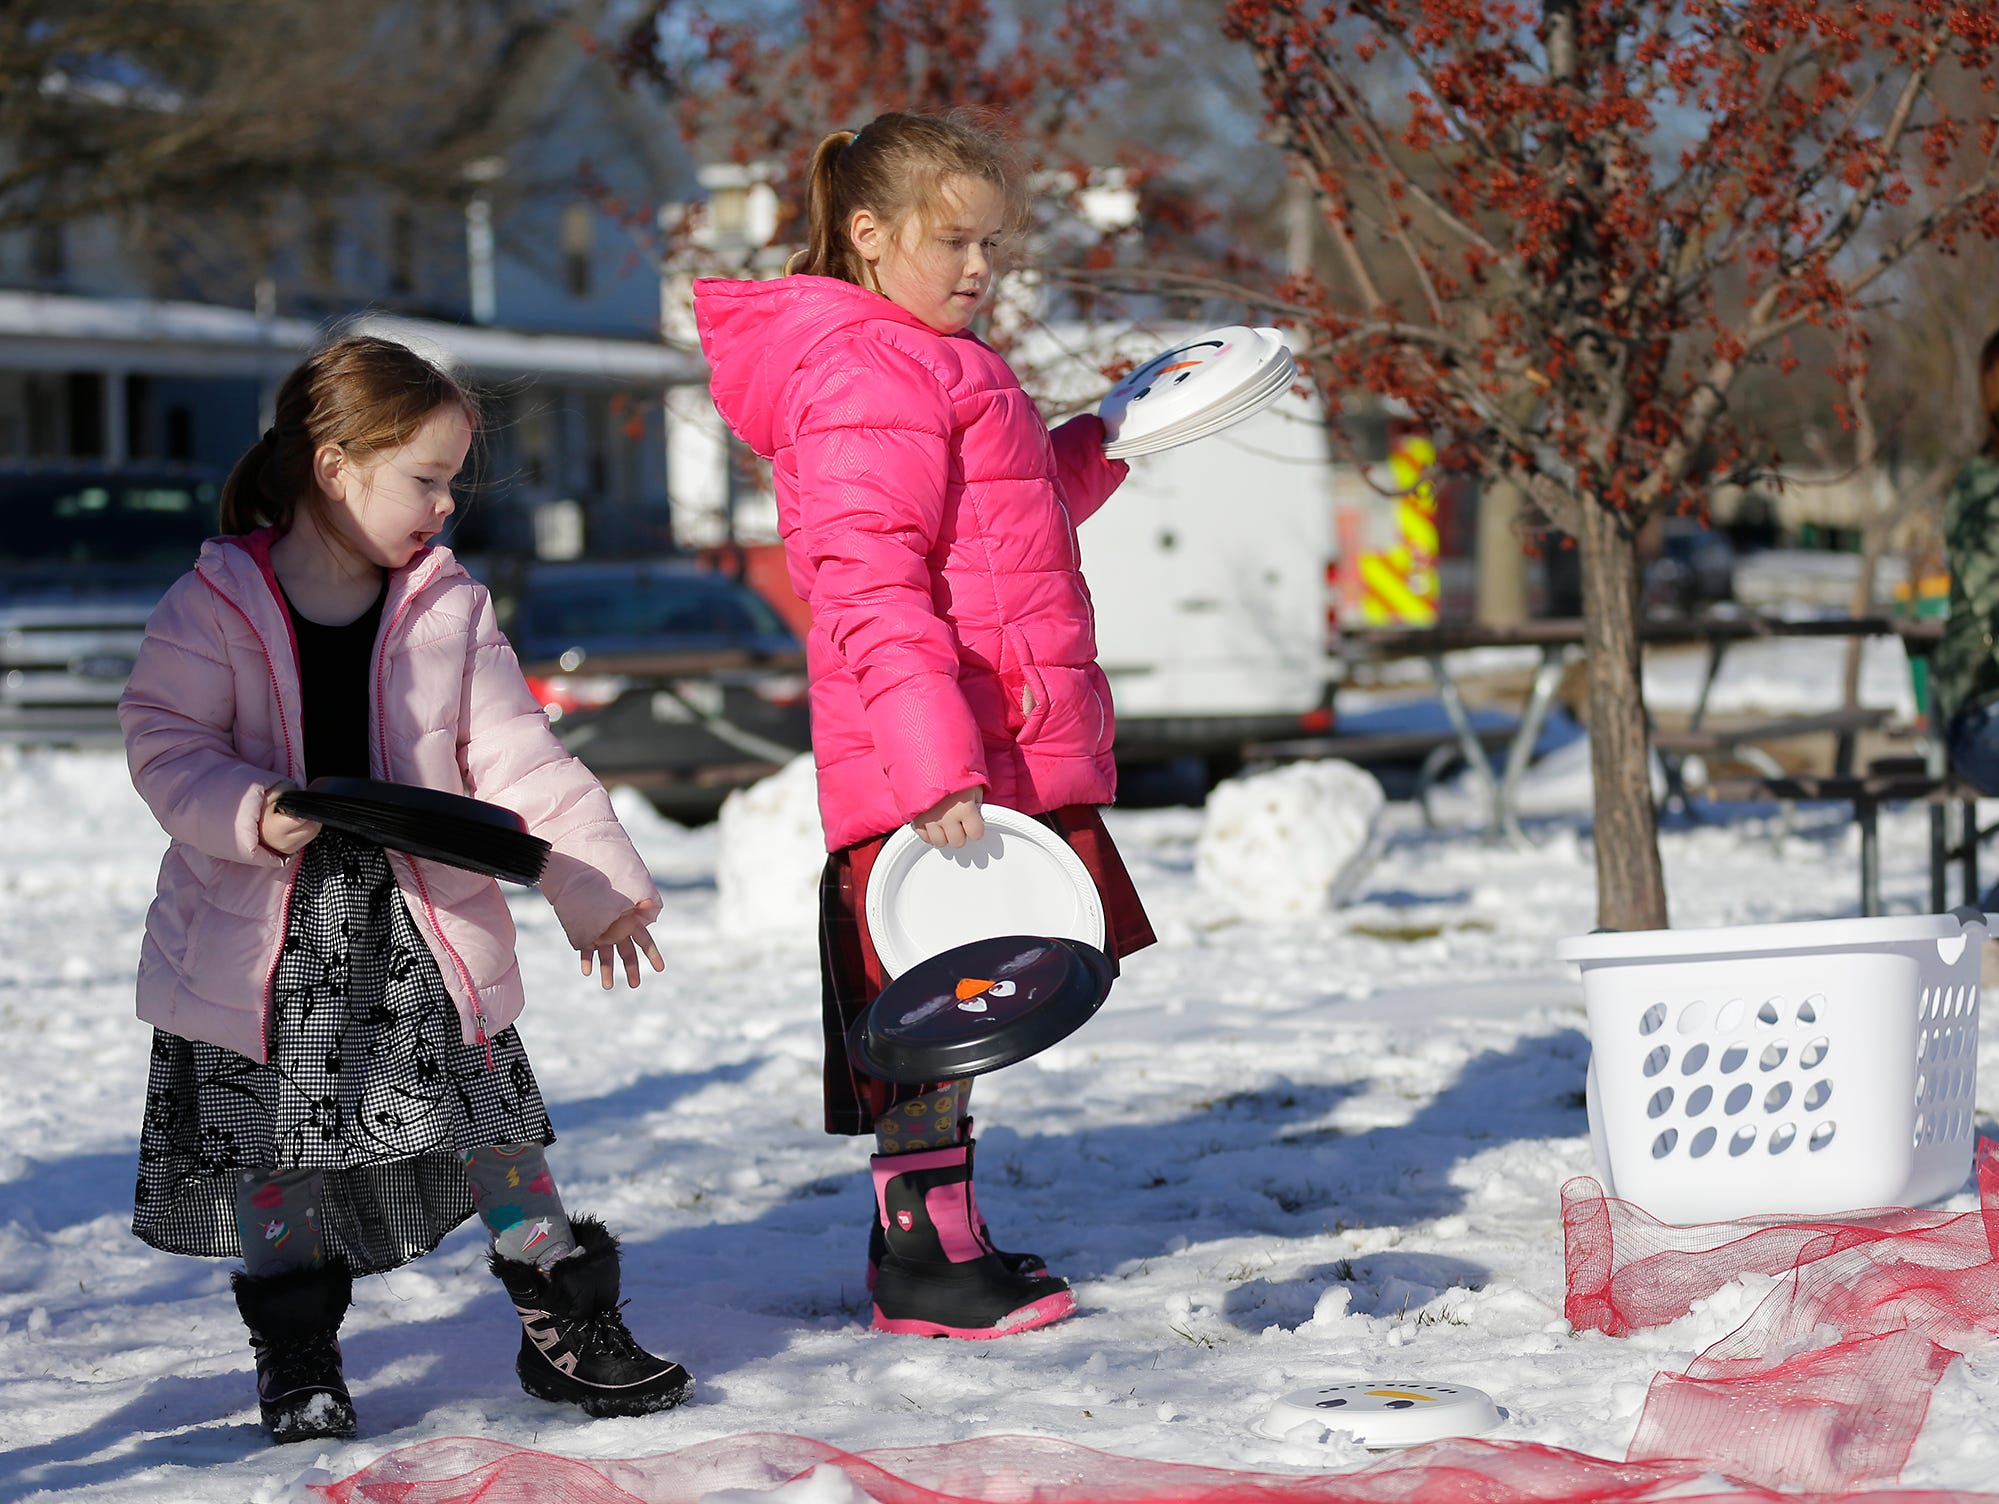 Phebe and Evelynn Karch of Fond du Lac play tic tac snow at Winterfest Saturday, January 5, 2019 at Hamilton park in Fond du Lac, Wisconsin. Doug Raflik/USA TODAY NETWORK-Wisconsin